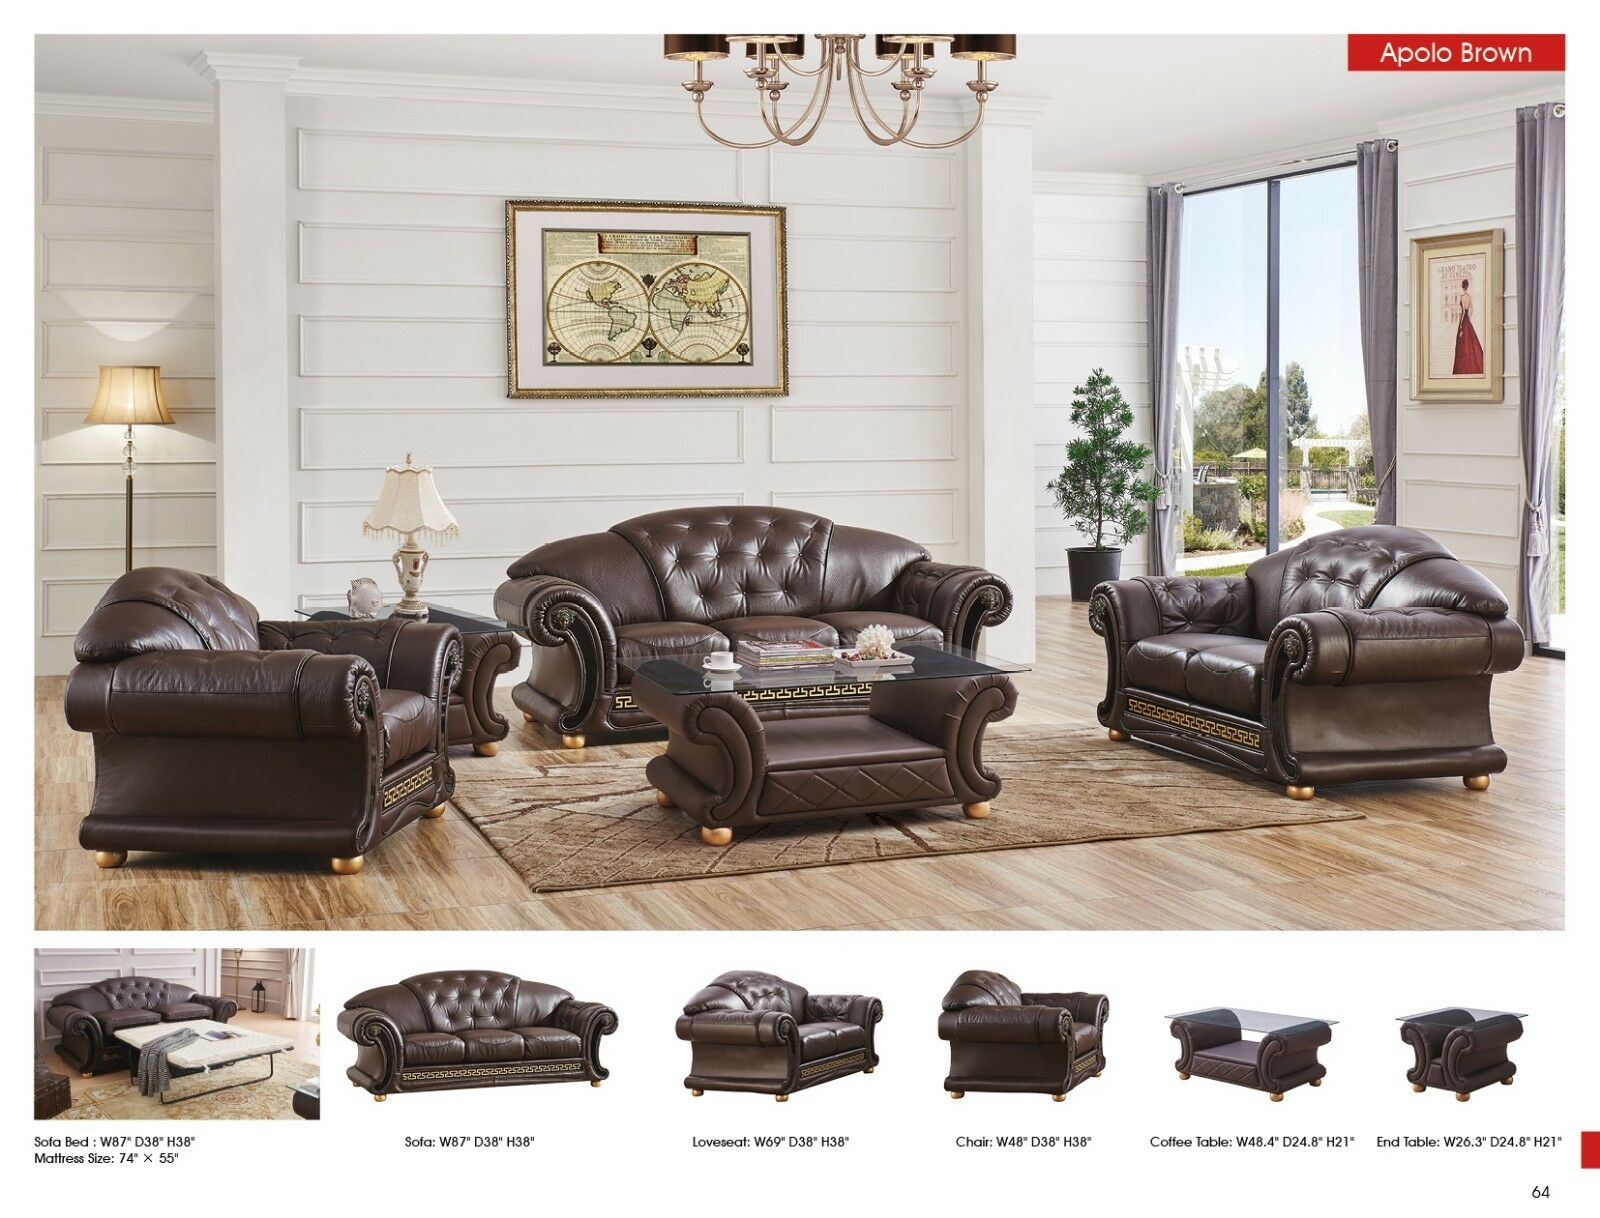 Apolo Living Room Set Sofa Loveseat Chair In Brown Genuine Italian Leather